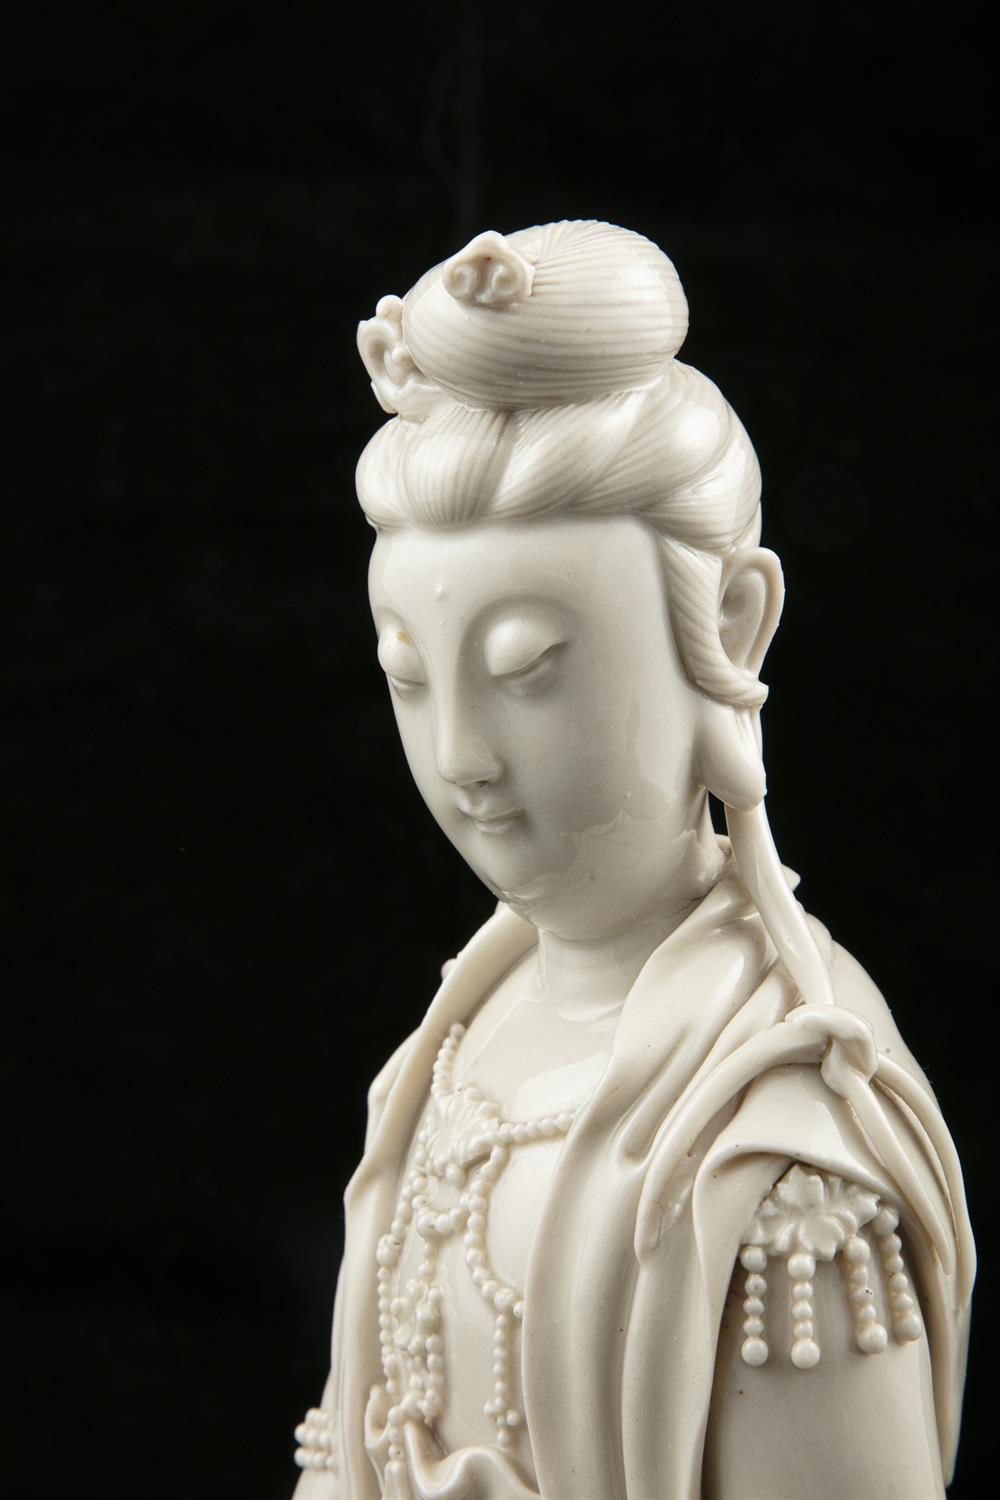 A LARGE DEHUA FIGURE OF A SEATED GUANYIN IMPRESSED WITH A HE CHAOZONG 何朝宗 CALABASH SHAPED SEAL - Image 42 of 48